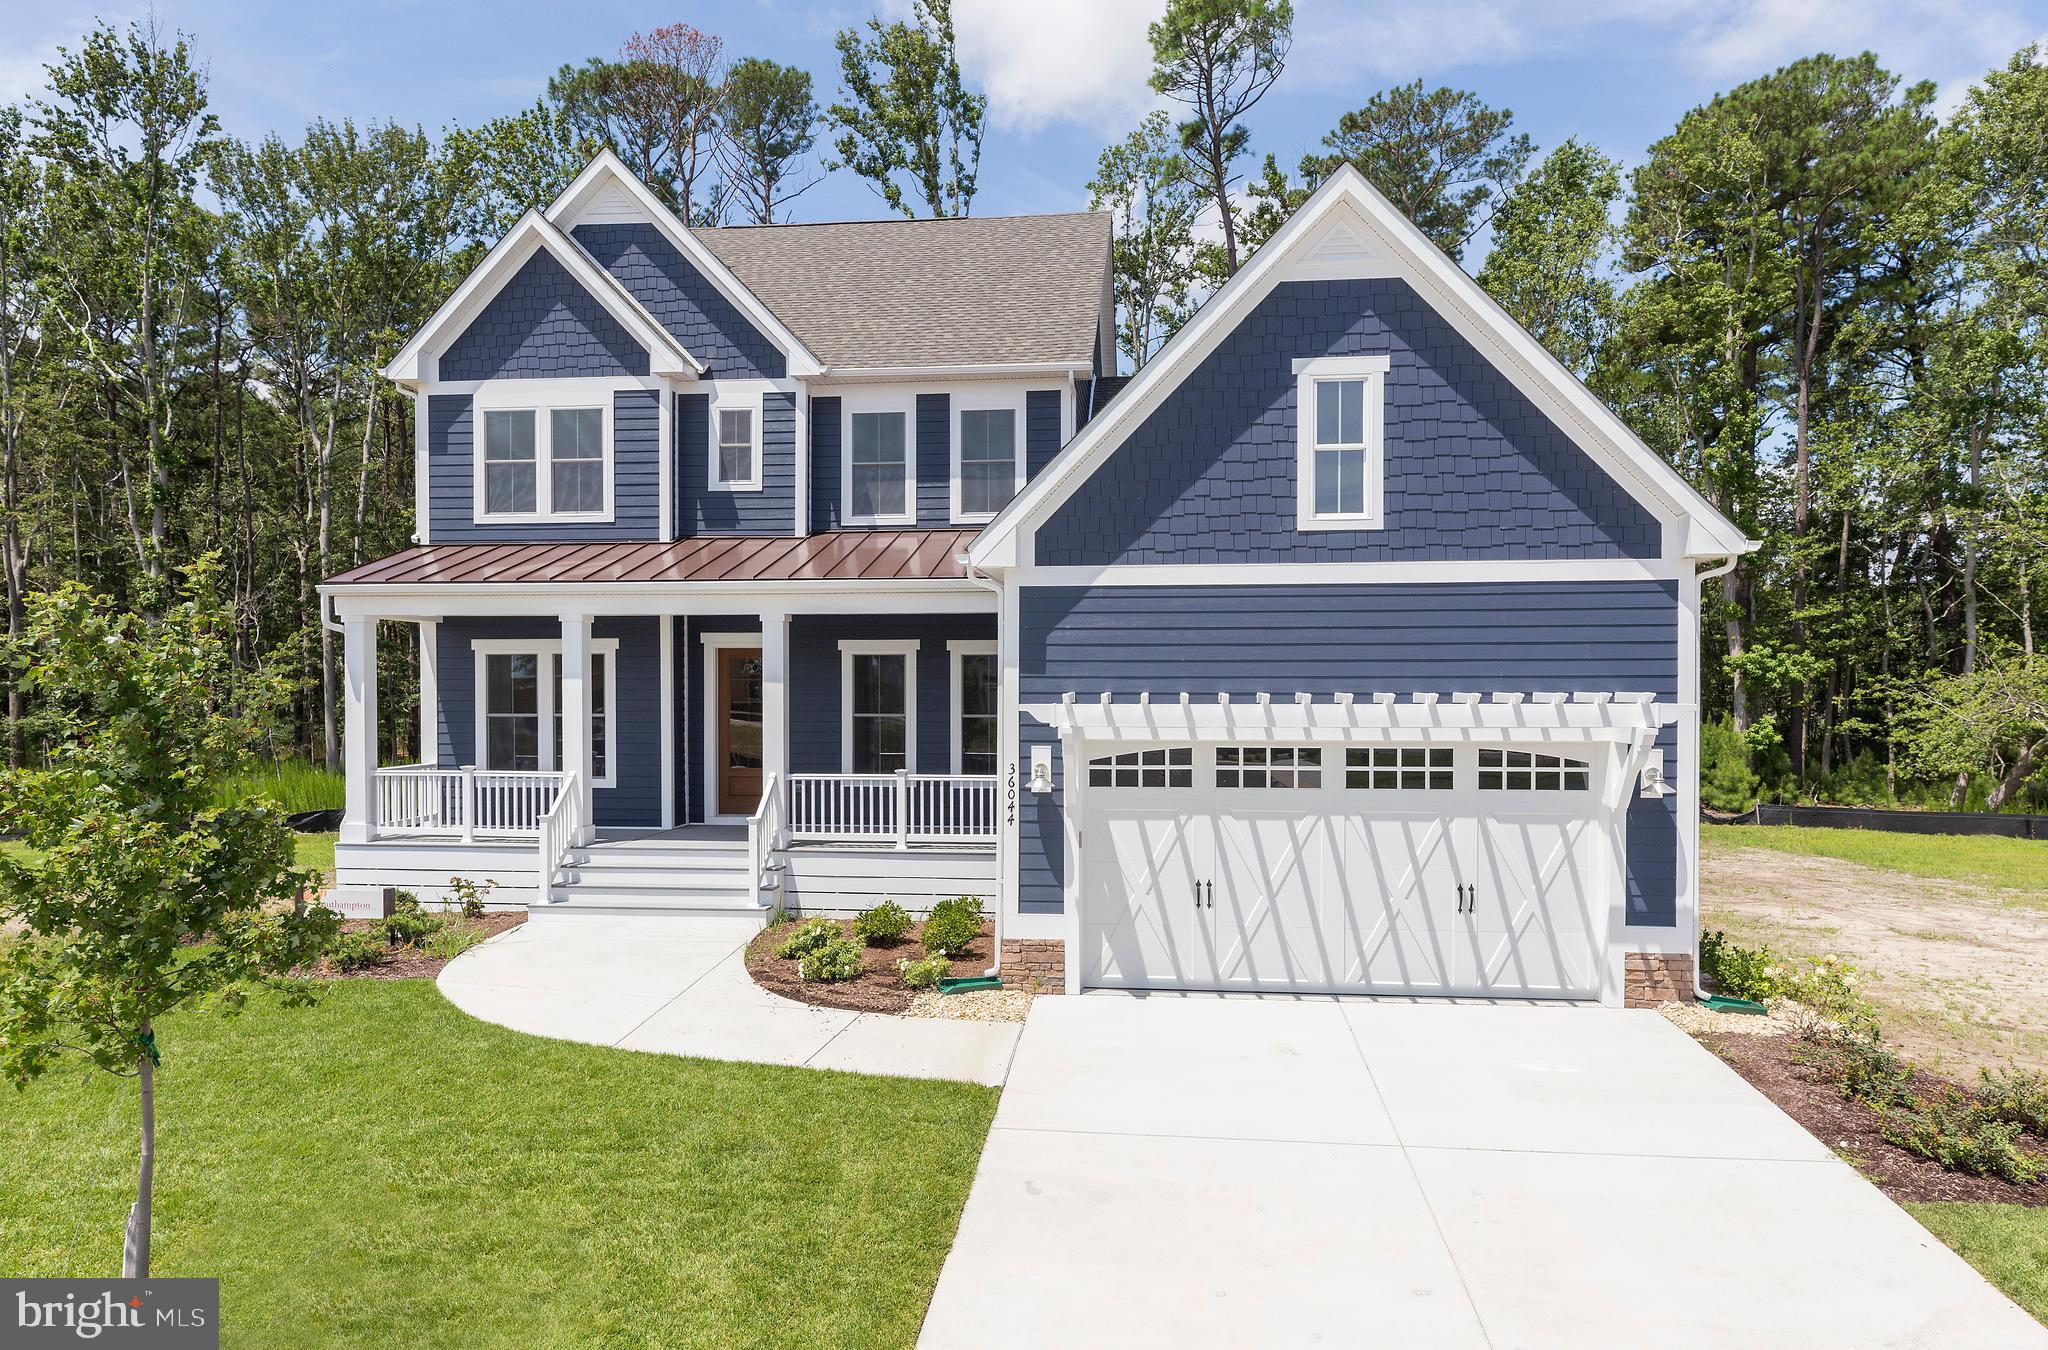 Coastal curb appeal at its best! https://www.nvhomes.com/new-homes/communities/the-estuary. The Southampton features 4 bedrooms, 3 bathrooms and offers the convenience of a first floor owner~s suite with upgraded Roman shower, a guest bedroom and a study. The open plan kitchen with airy morning room adjacent the great room is an entertainers dream! The designer kitchen includes large quartz island, ceramic farmhouse sink ugrade, abundant counter area and tons of cabinet space. Right off the main living area your outdoor living space is greatly extended - bring the indoors outside with a partia. covered porch in front and the addition of a first floor covered rear porch maximizing all of your outdoor entertainment spaces. The attention to detail continues upstairs with 2 additional guest bedrooms, a bonus room, and full bath - perfect for when family and friends visit you at the beach. Looking for additional storage? A large walk-in unfinished storage room is conveniently located off the upstairs bonus room. Upgrades also include the 'Williams' Designer Palette of interior finishes, upgraded kitchen cabinetry and tiled backsplash, tray ceiling in master suite, and more!